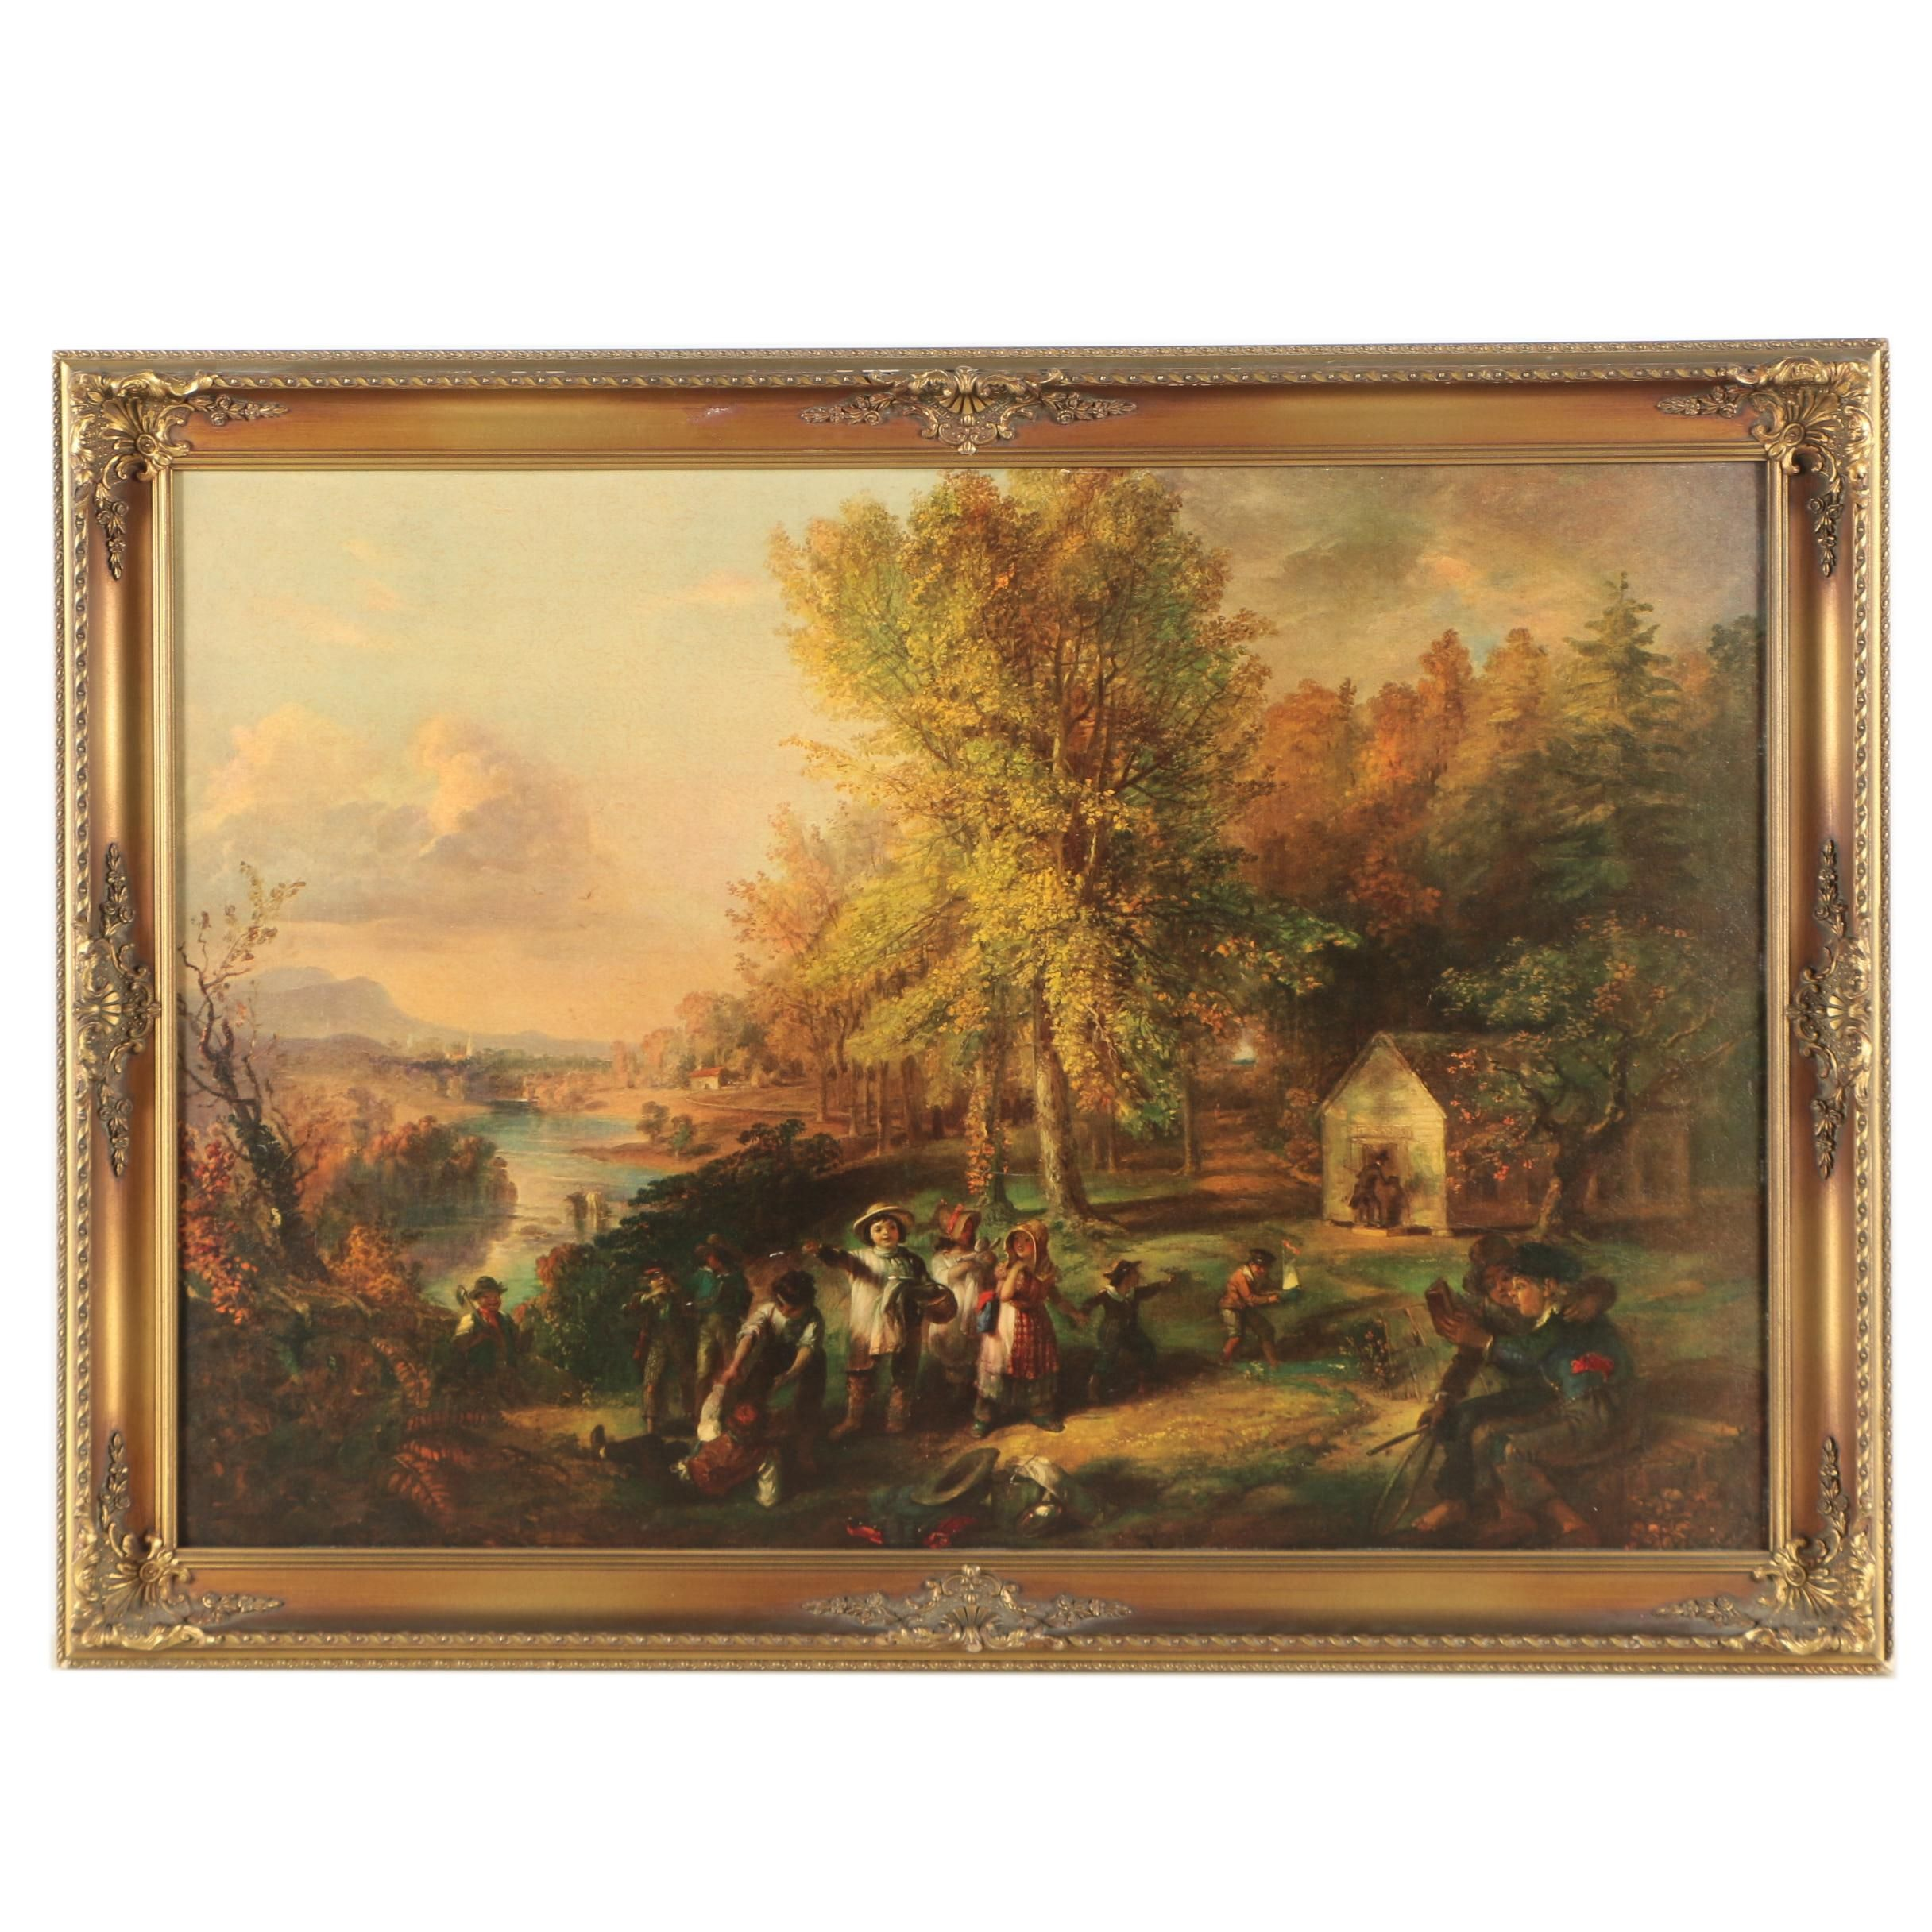 Giclee on Board After Henry Inman of Outdoor Scene